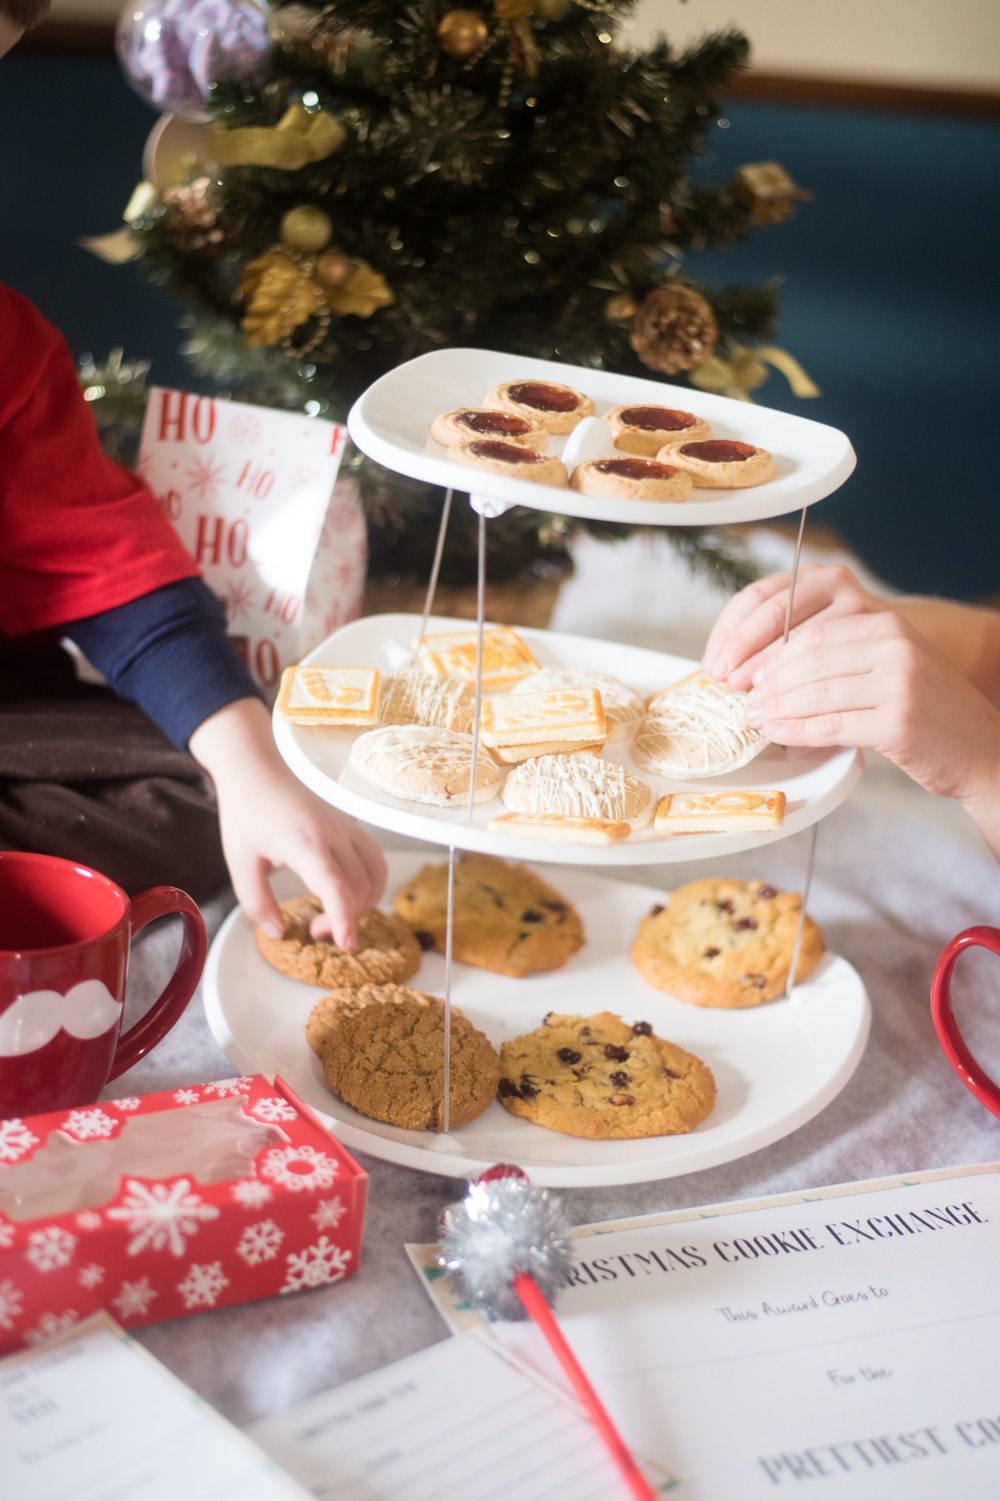 A woman sitting at a table with a plate of food, with Christmas cookie